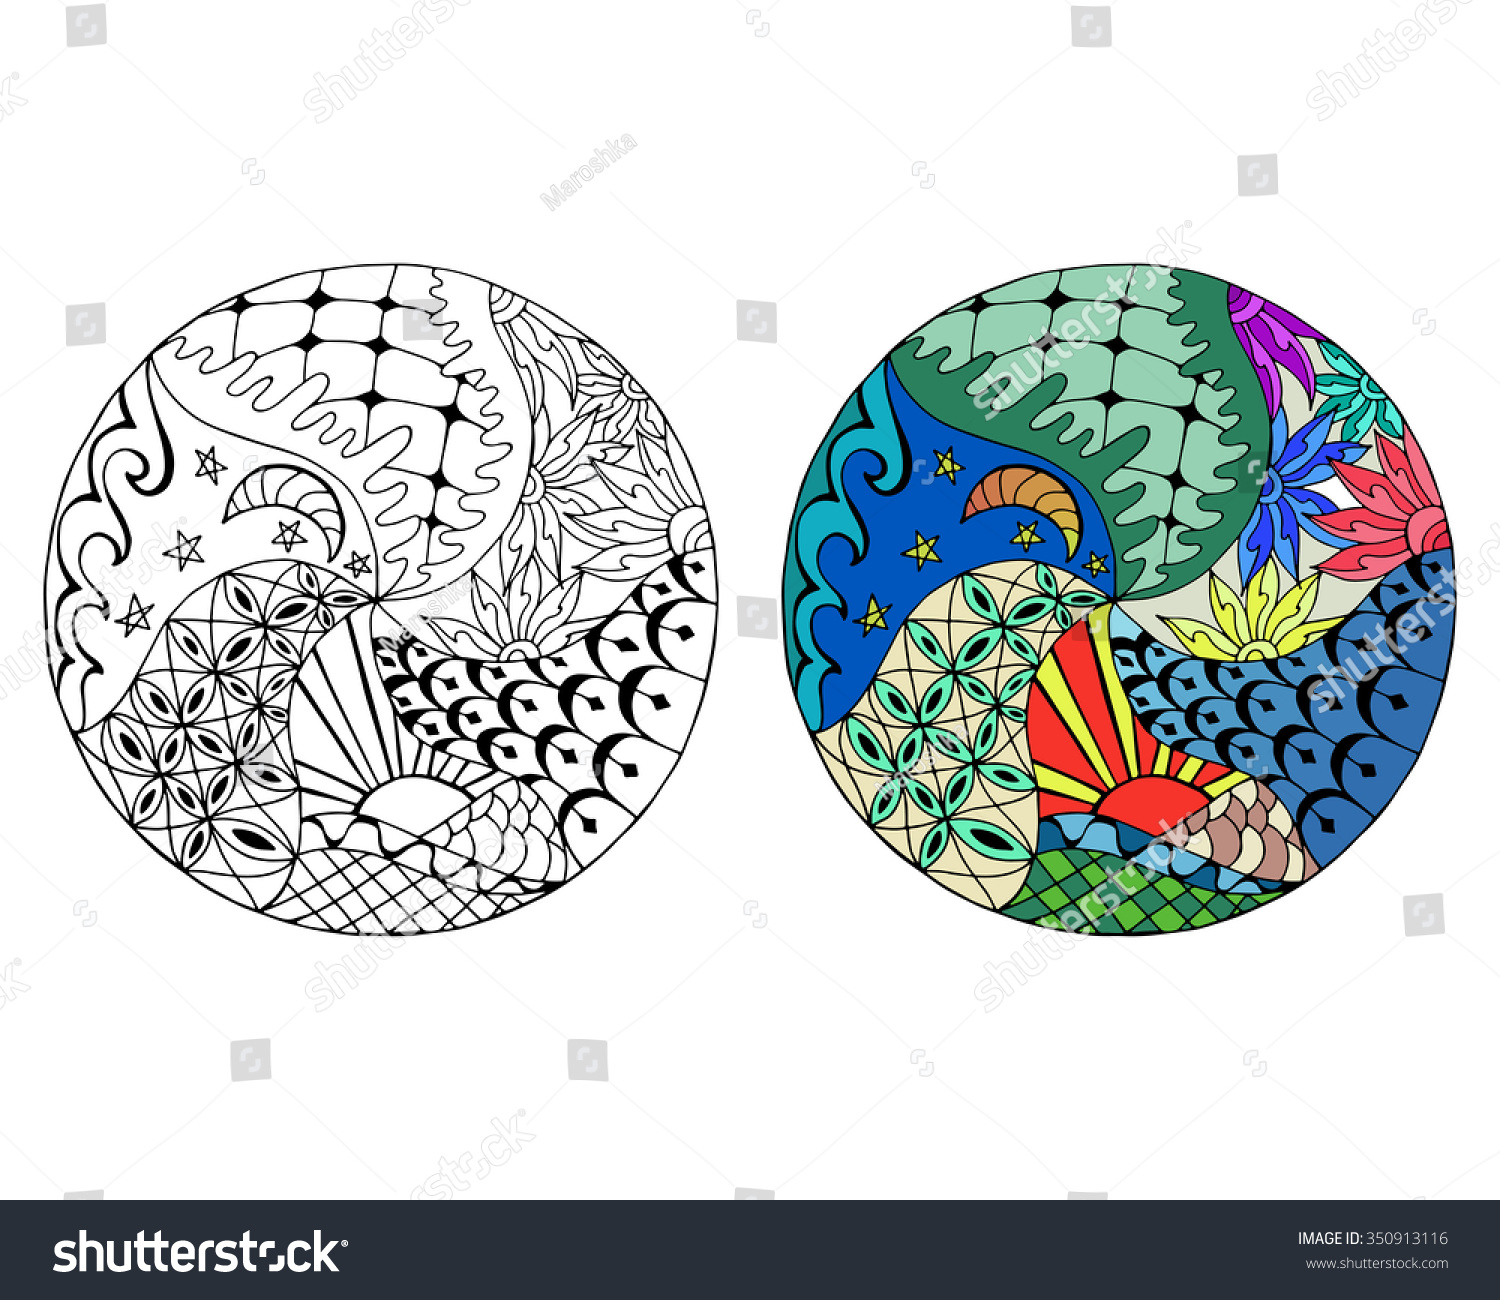 Hand Drawn Day And Night Circle Mandalas For Anti Stress Coloring Page Pattern For Coloring